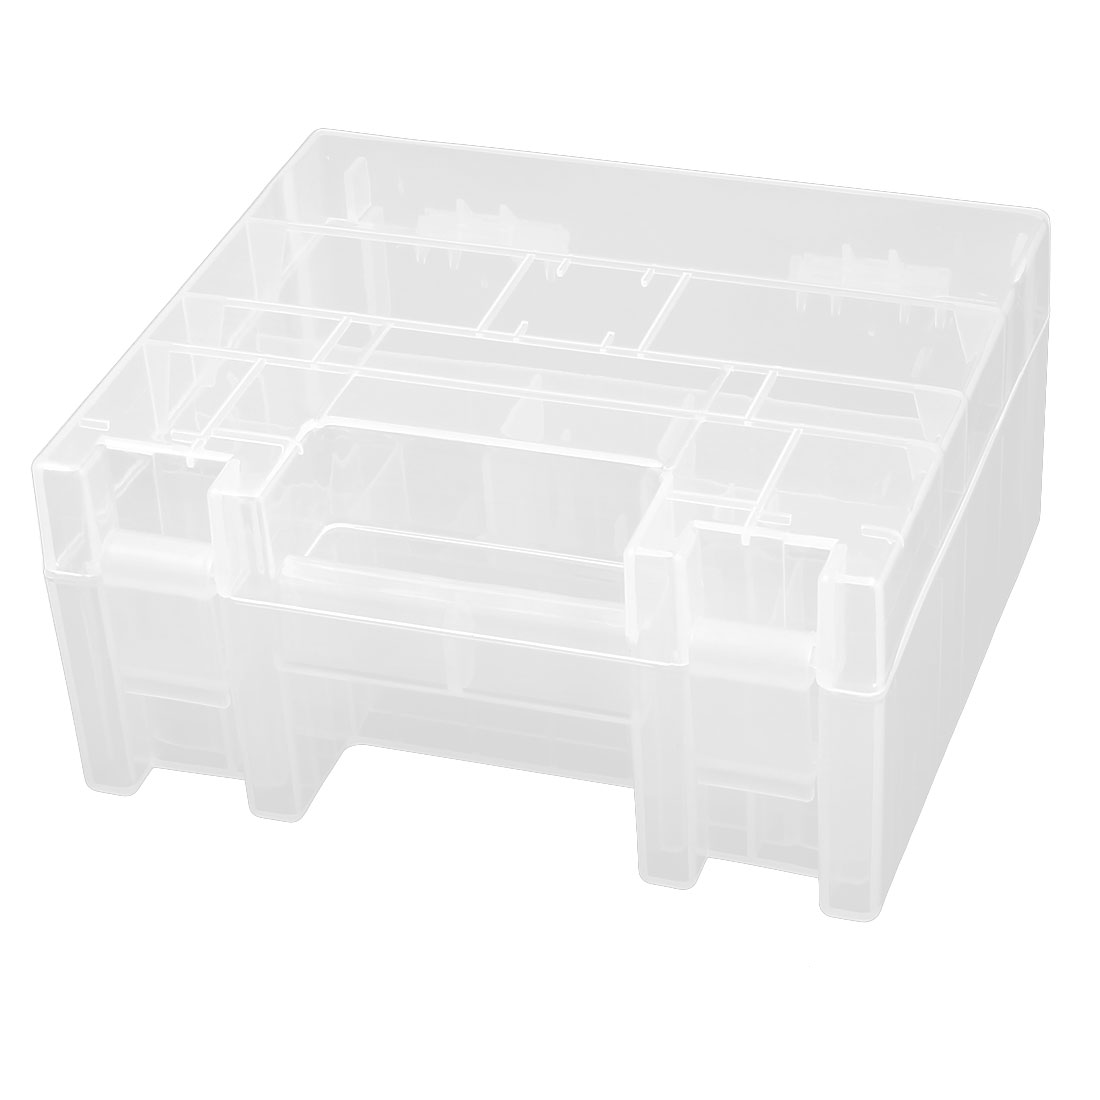 Hard Plastic Case Holder Storage Box Container for AAA/AA/D Battery